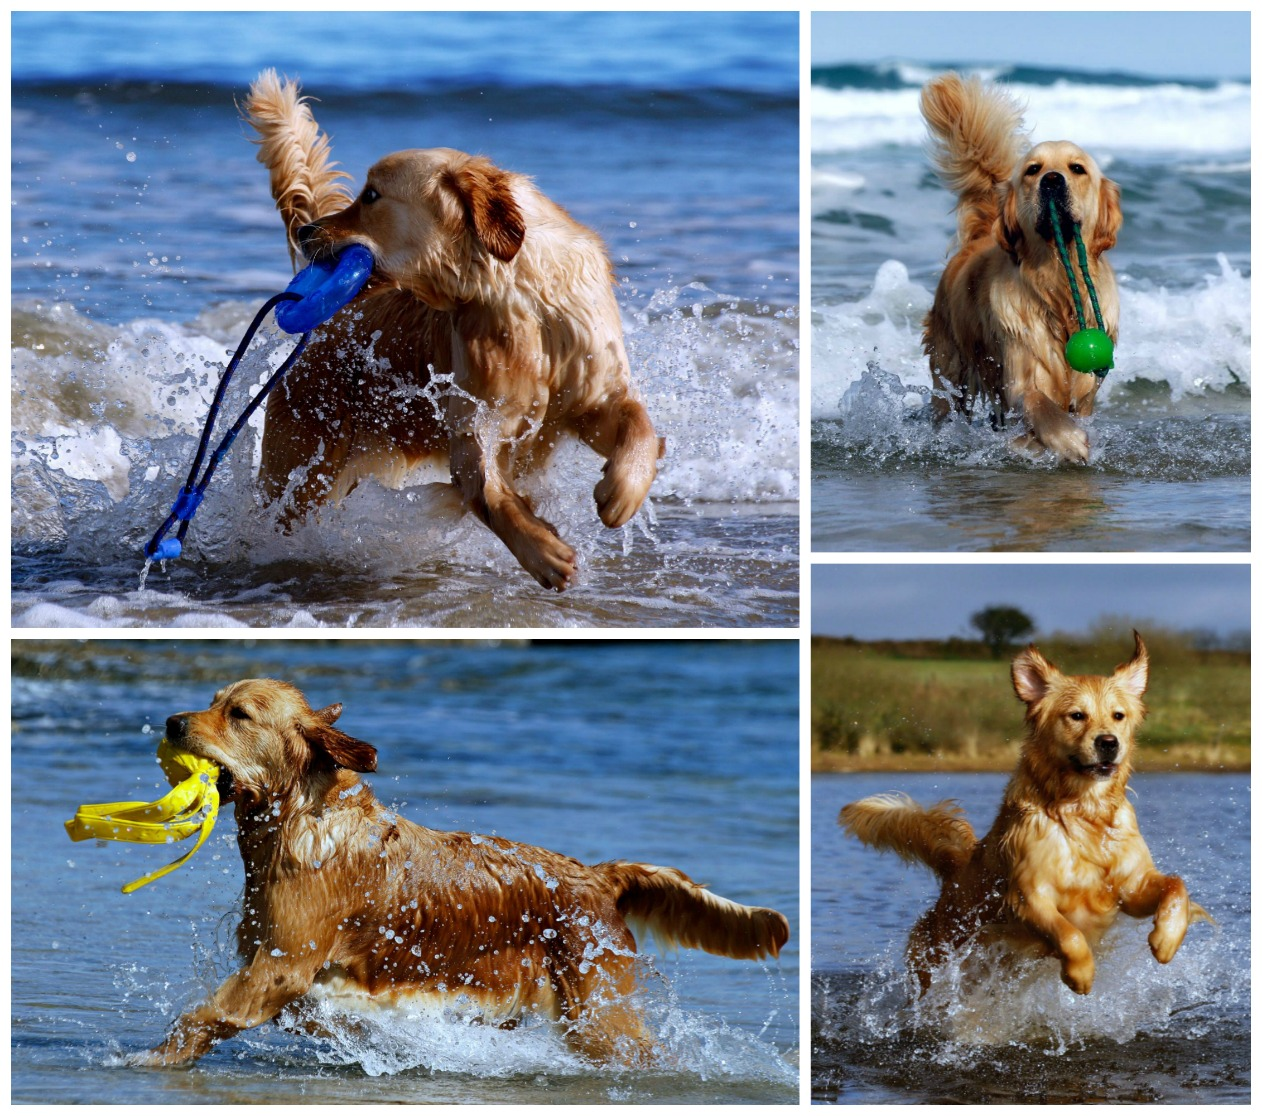 Golden retrievers playing and retrieving crashing through blue seas and water